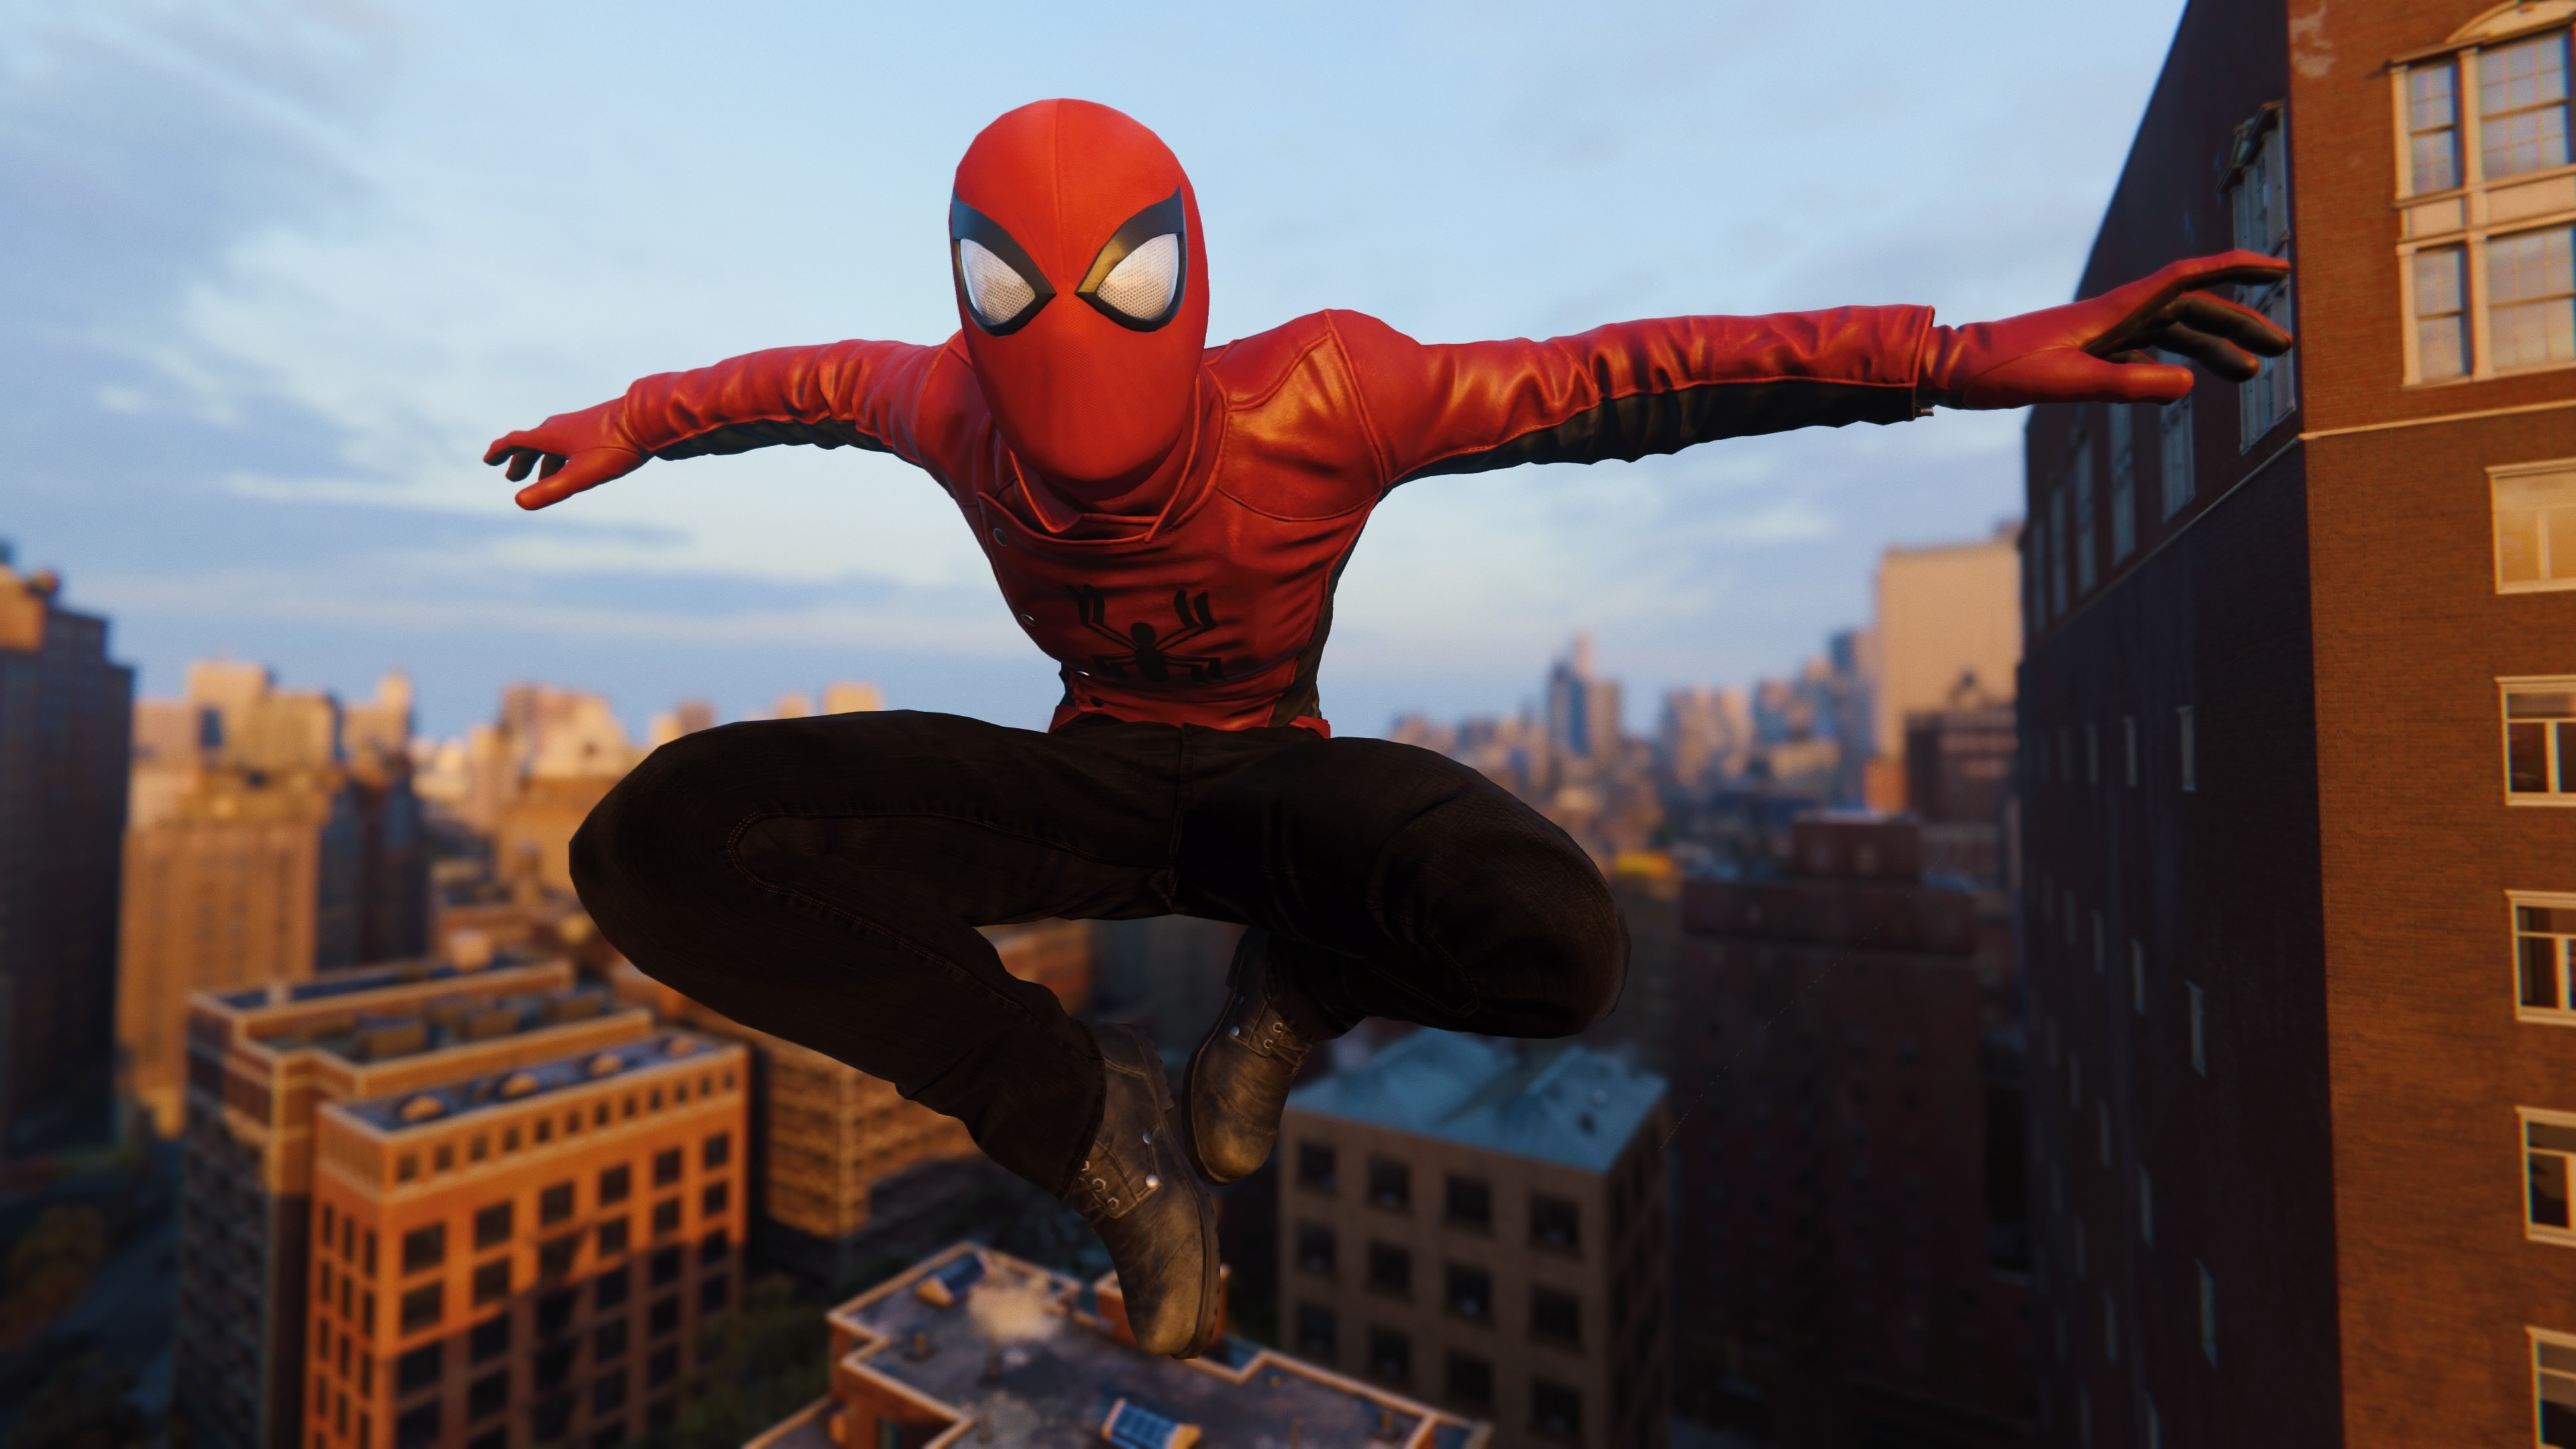 spiderman jumping wearing red spider jacket 1537692845 - Spiderman Jumping Wearing Red Spider Jacket - superheroes wallpapers, spiderman wallpapers, spiderman ps4 wallpapers, ps games wallpapers, hd-wallpapers, games wallpapers, 4k-wallpapers, 2018 games wallpapers